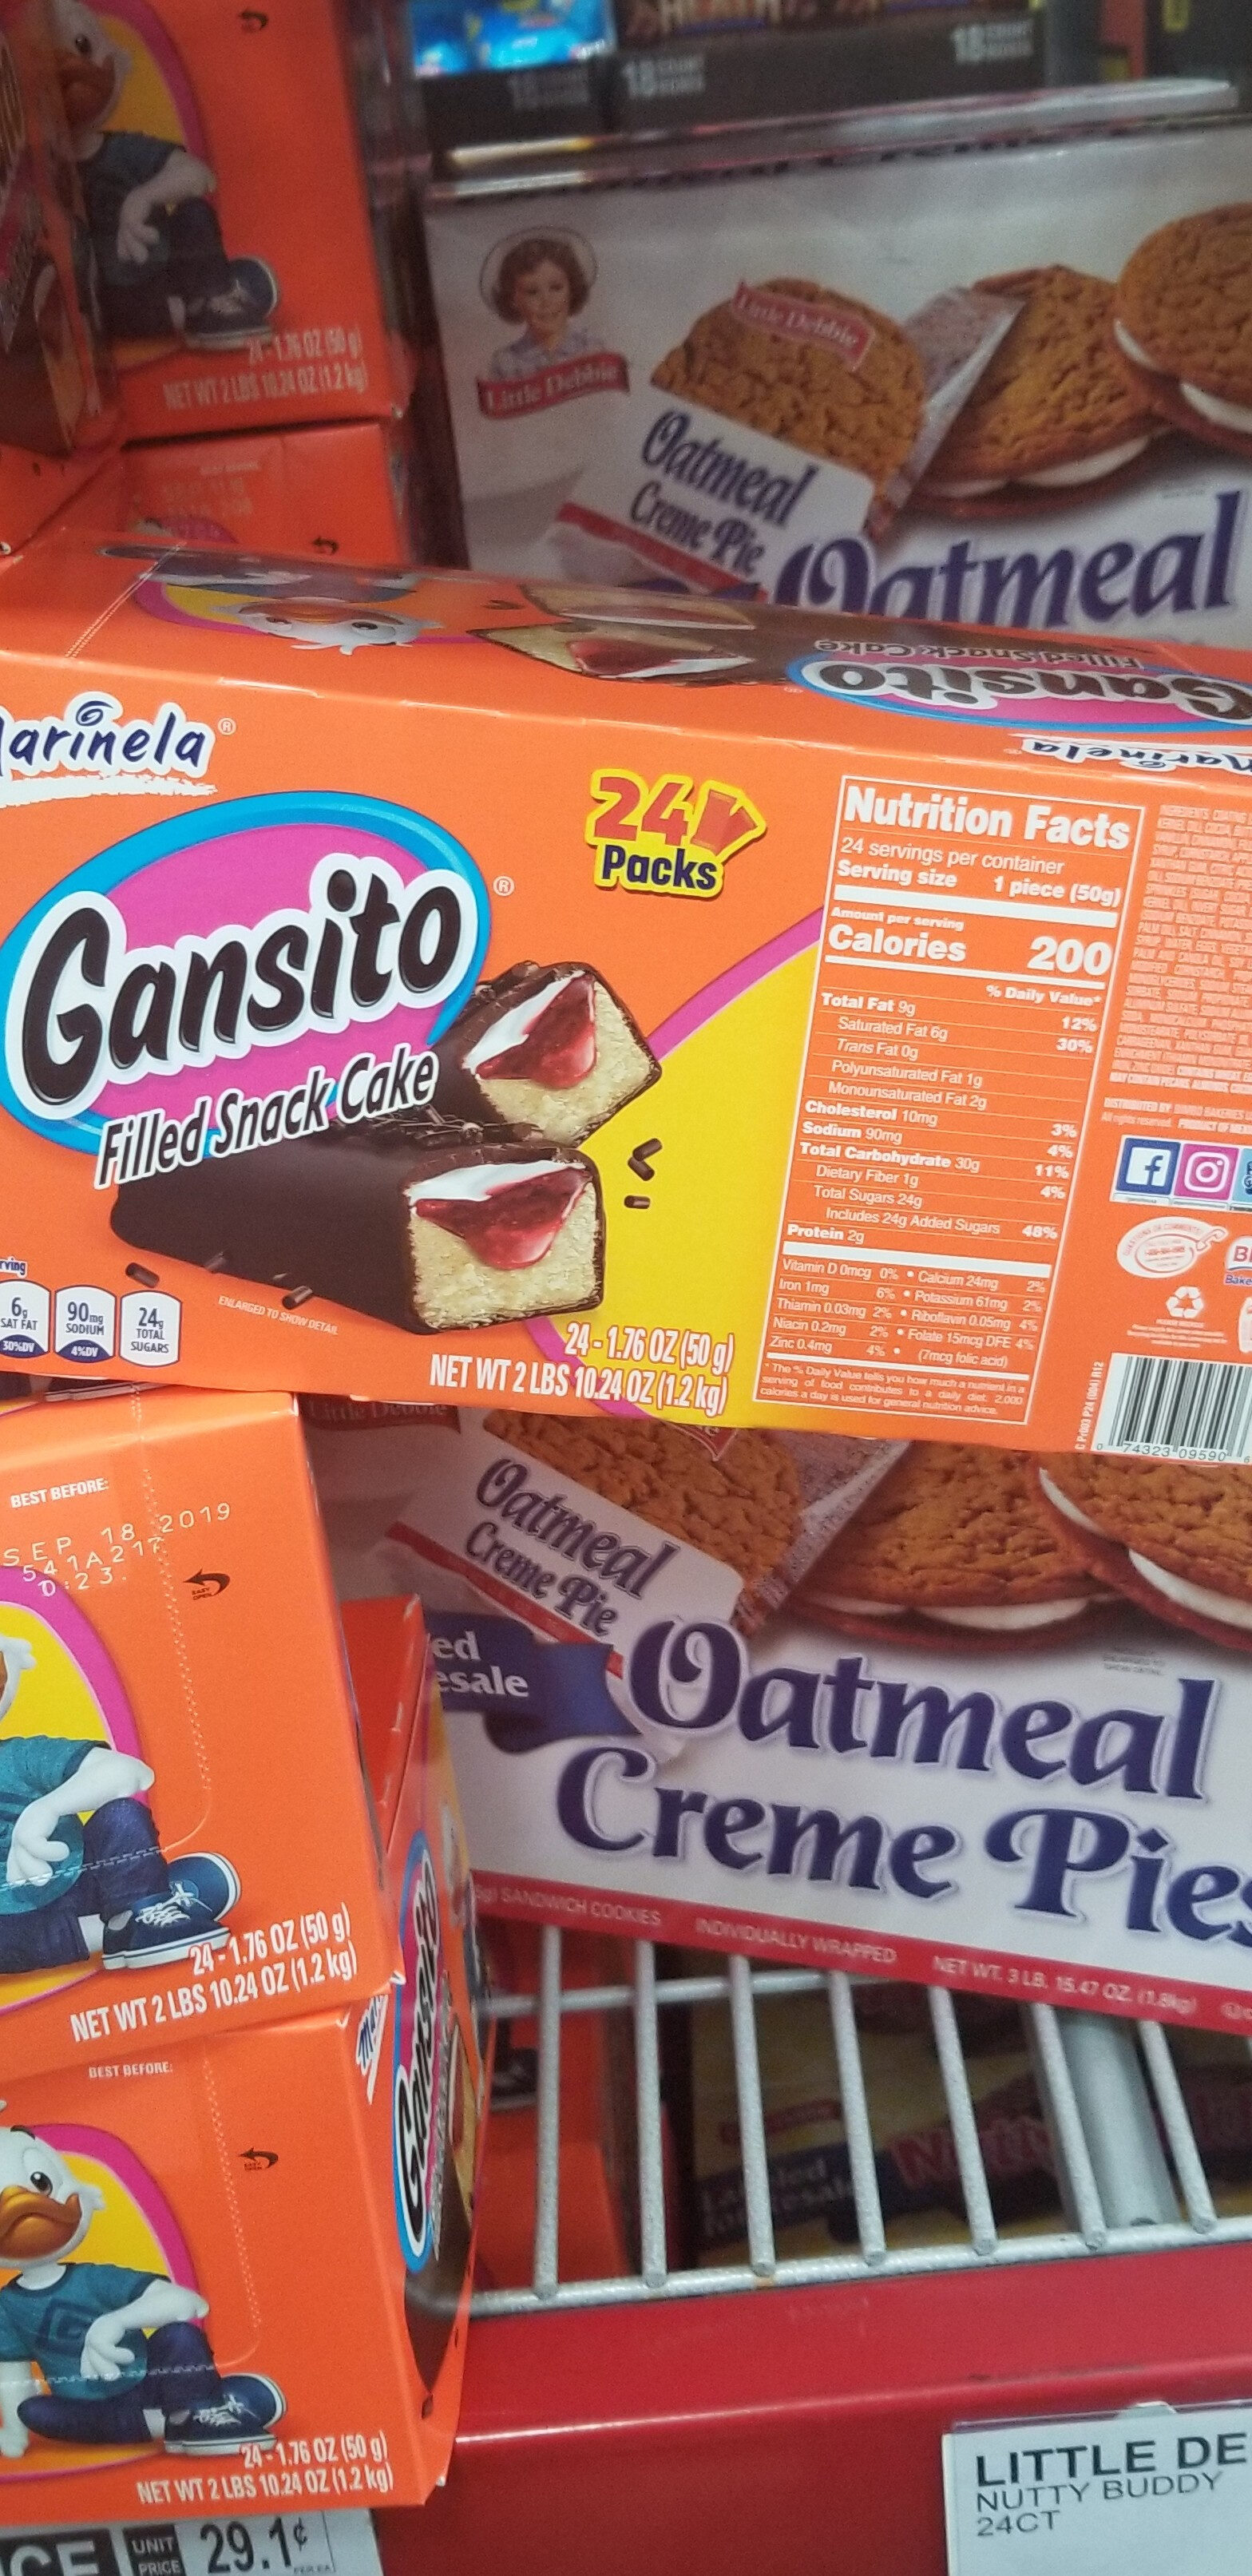 Gansito, 24 Filled Snack Cakes - Product